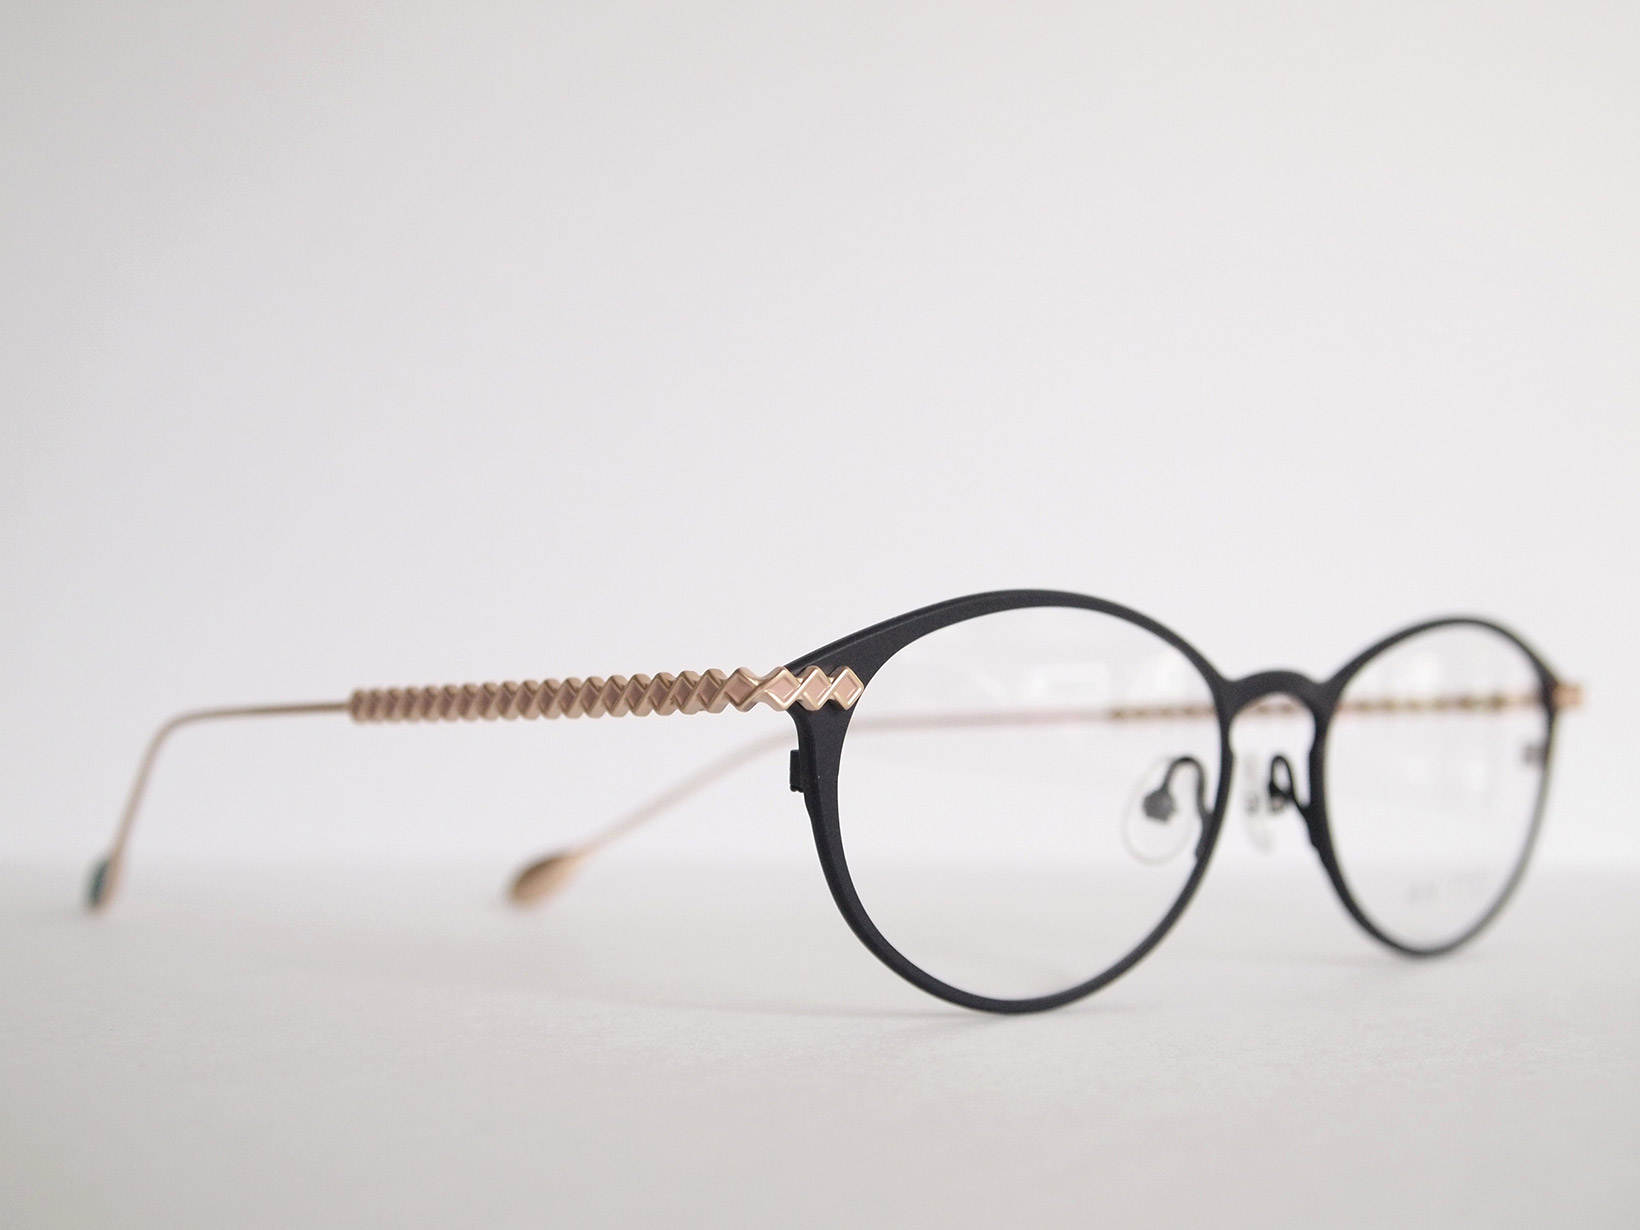 AKITTO 2020-3rd lin1 color:NV size:51□17 material:titanium price:¥44,500(+tax)